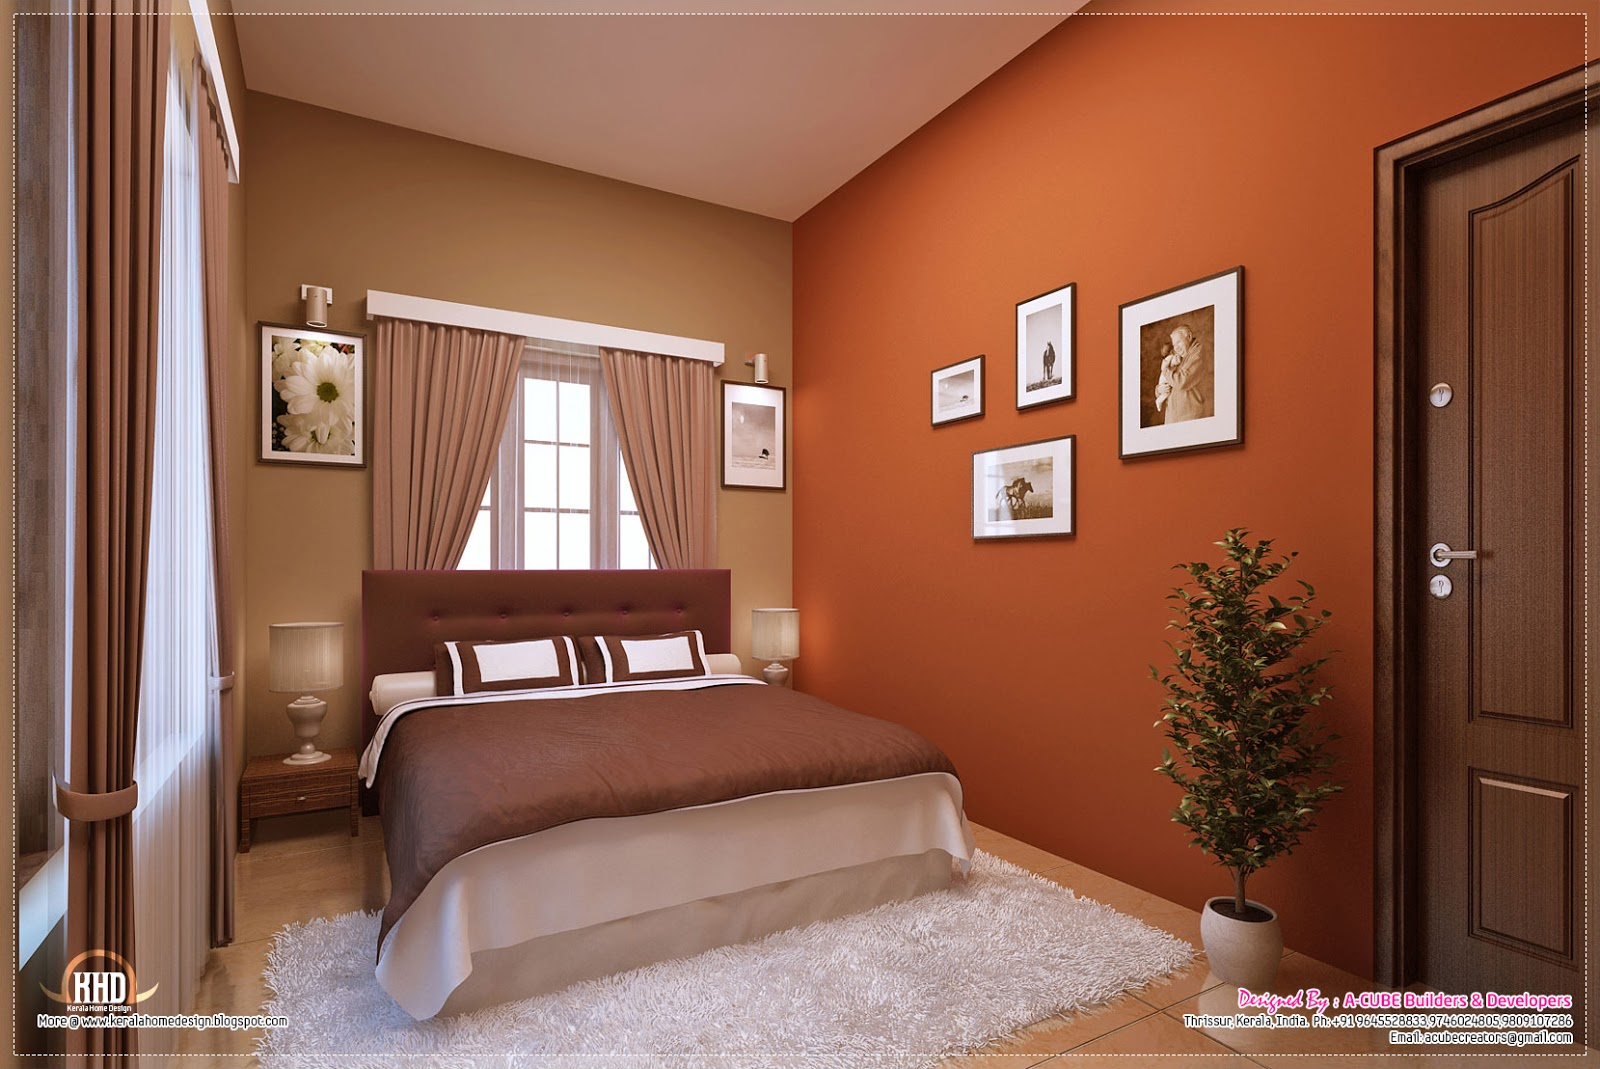 Awesome interior decoration ideas home kerala plans for Interior decoration with pictures